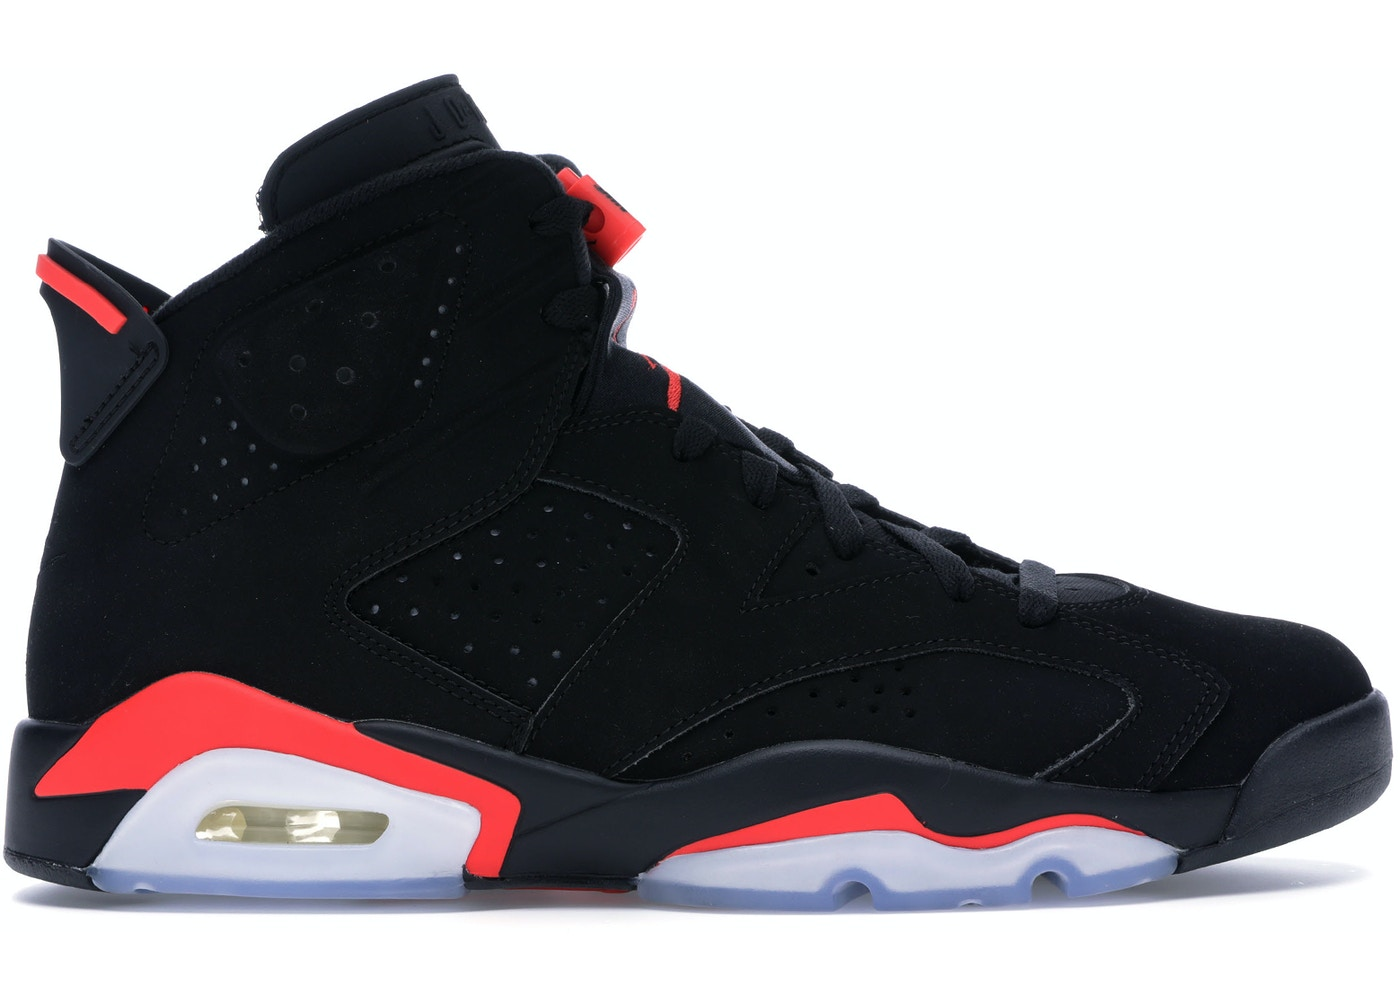 quality design e5b9d 19750 Buy Air Jordan Shoes   Deadstock Sneakers